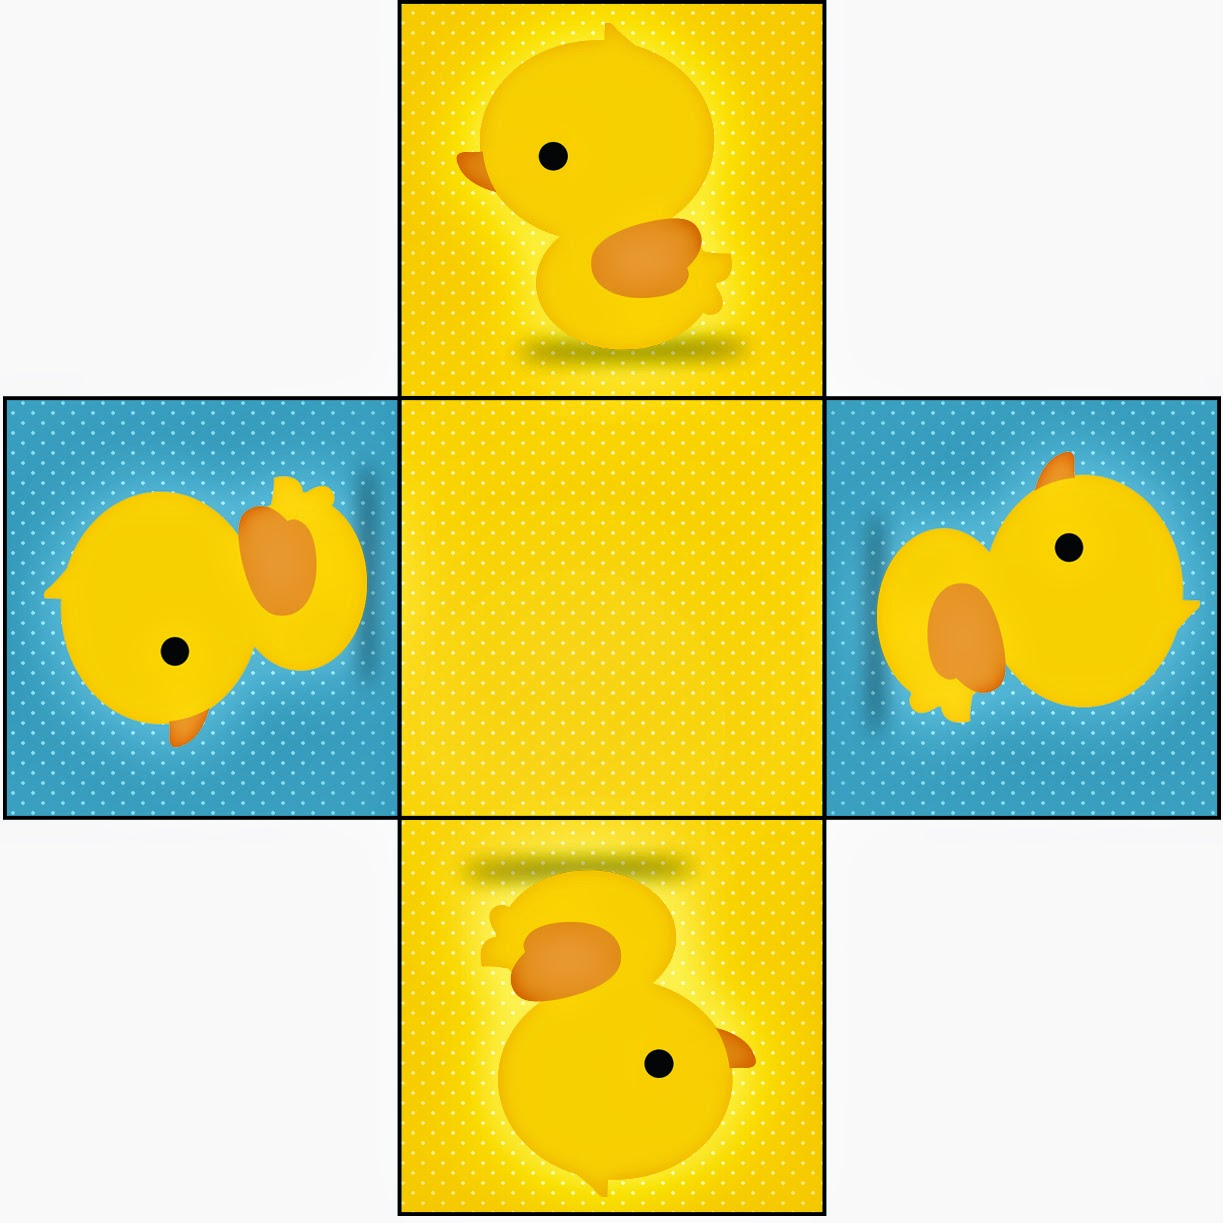 It's just a picture of Resource Rubber Duck Printable